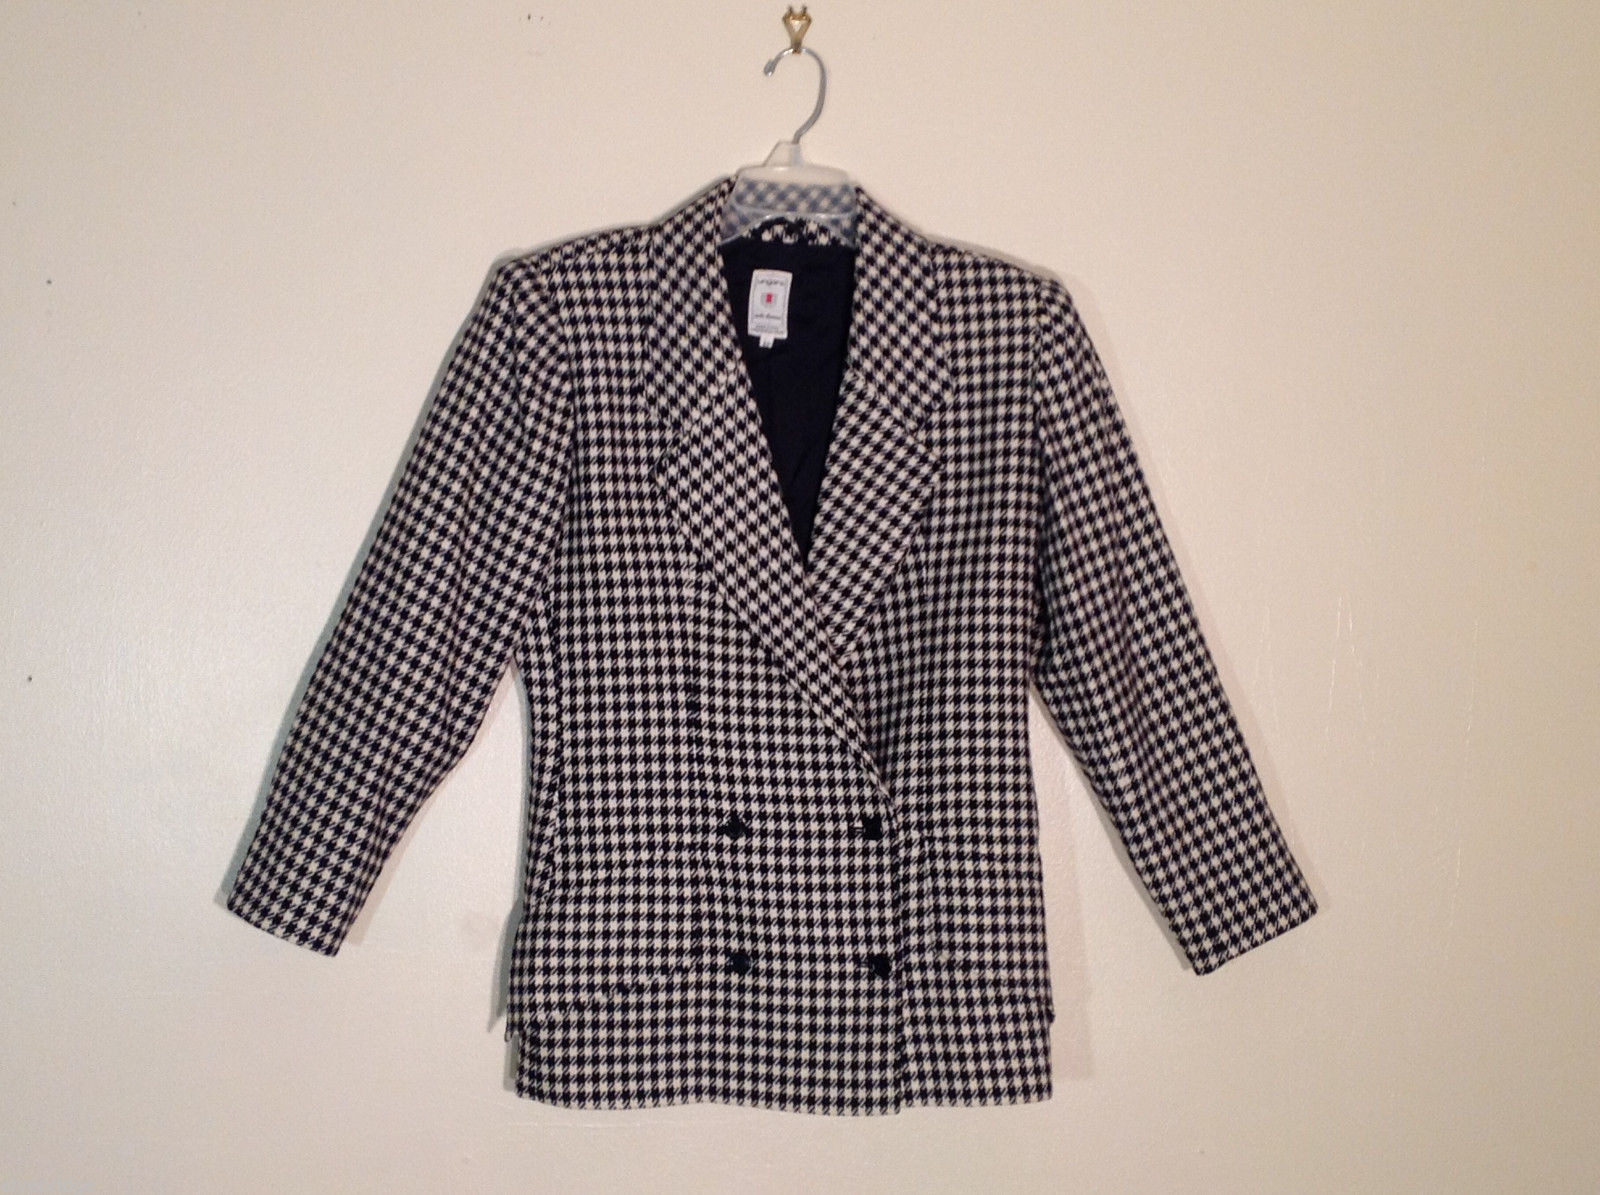 Women's Ungaro Solo Donna Italy Size 42 100% llama wool black and white blazer